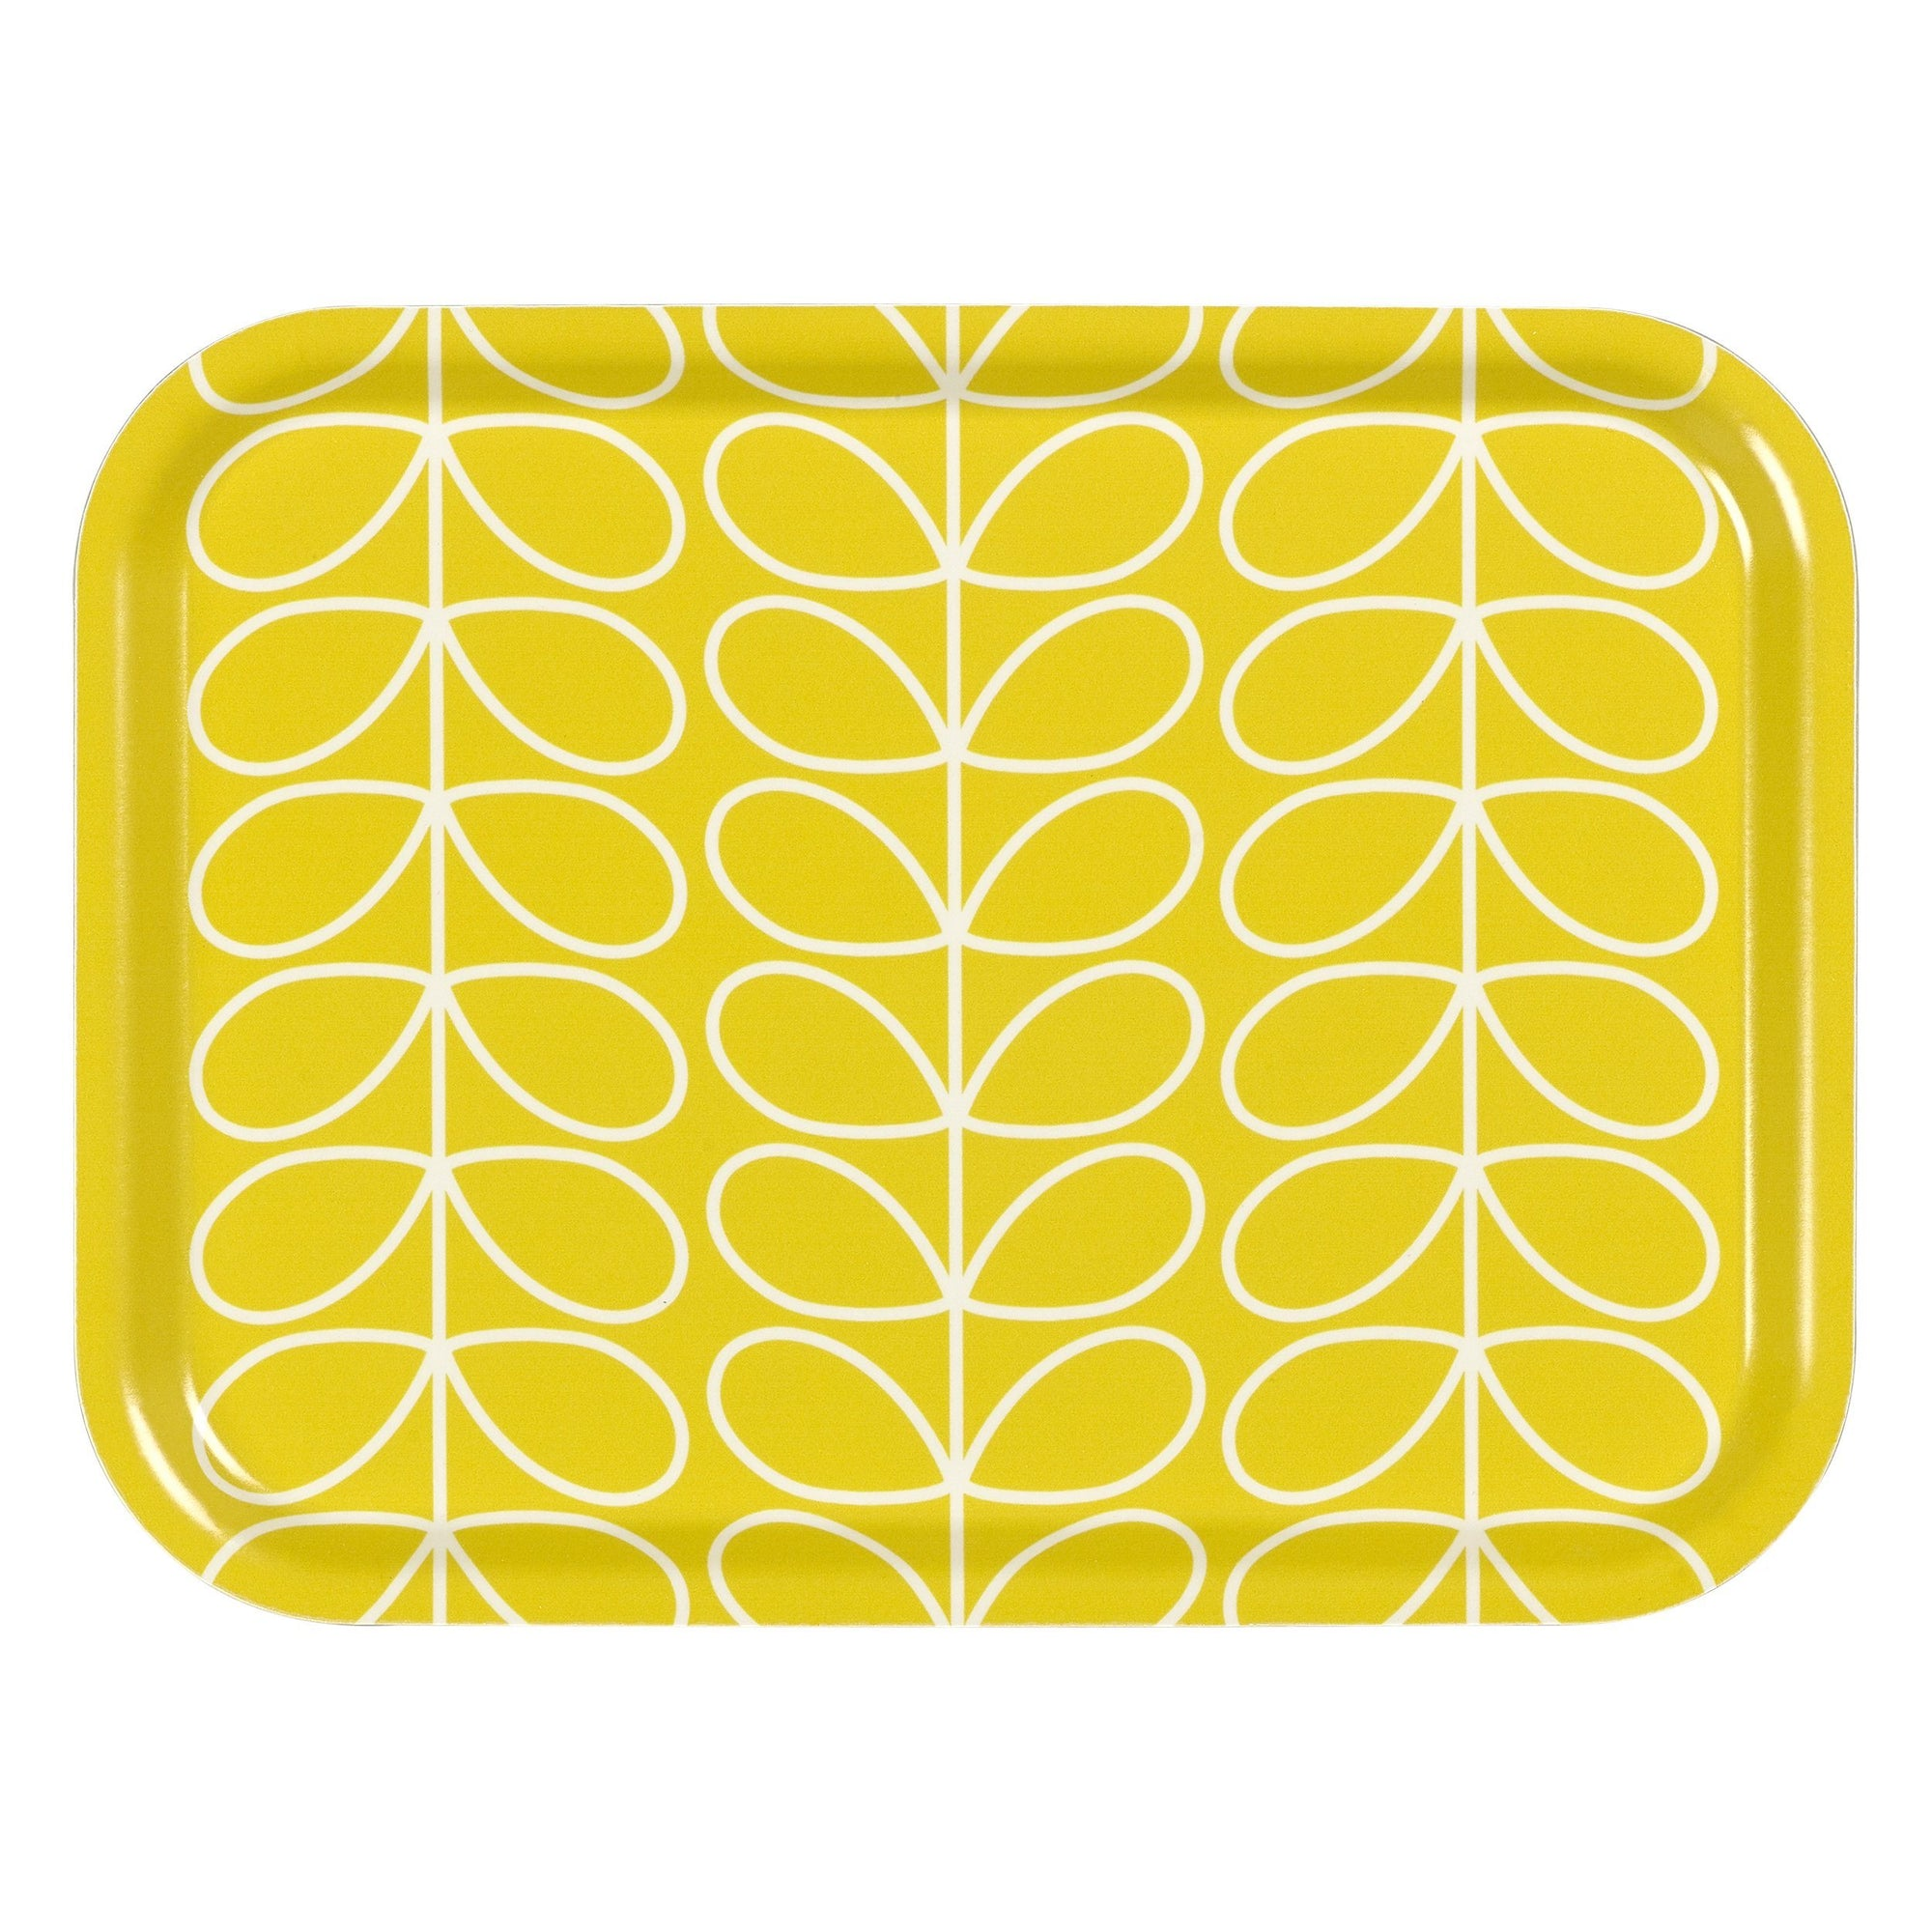 Orla Kiely Small Serving Tray Linear Stem - Yellow - BouChic